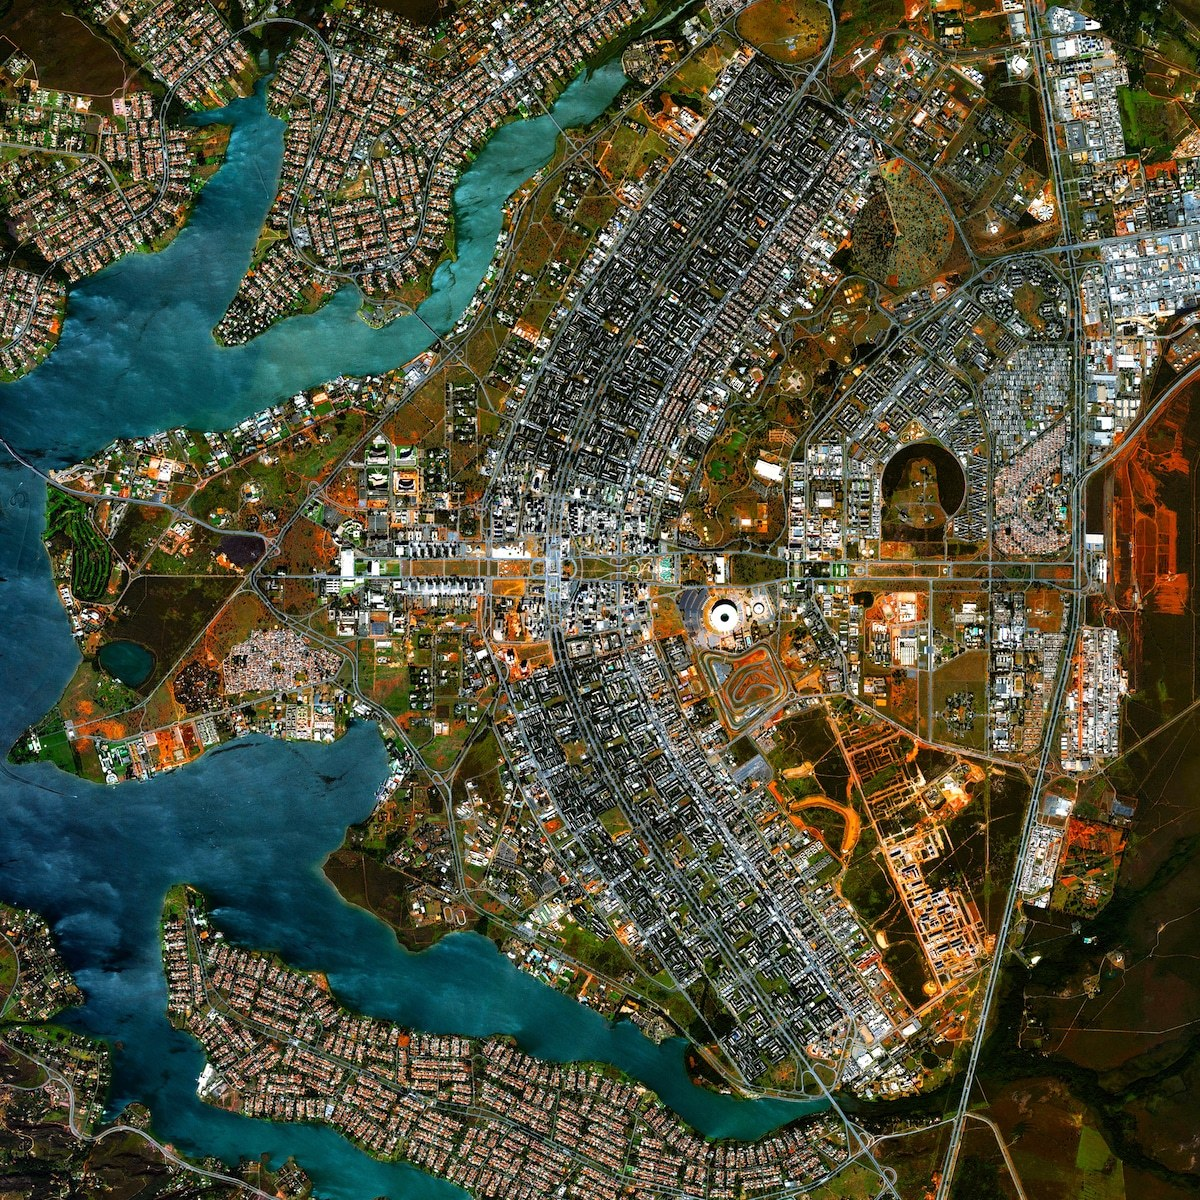 Get-a-Birds-Eye-View-of-UNESCO-World-Heritage-Sites-Across-the-Globe-14